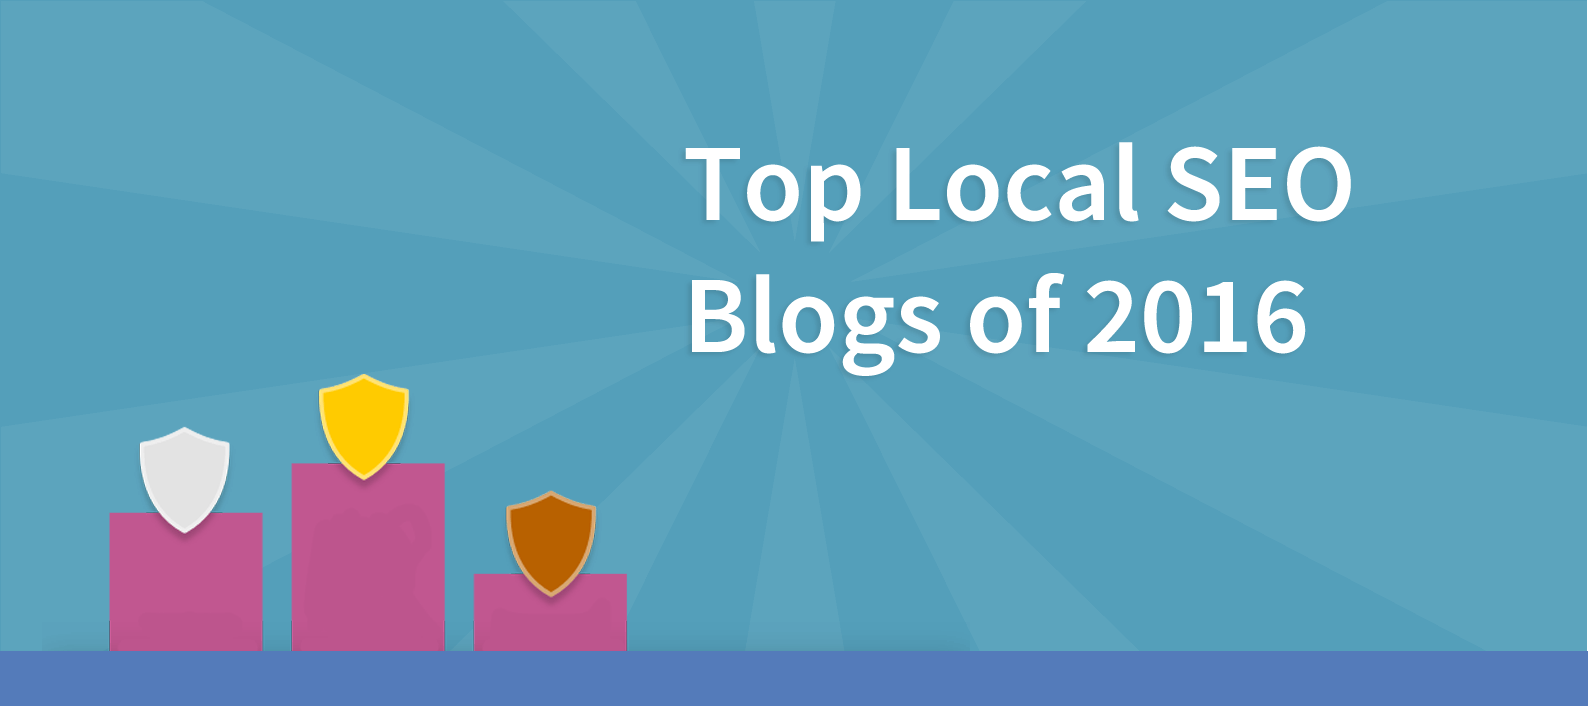 Top Local SEO Blogs 2016